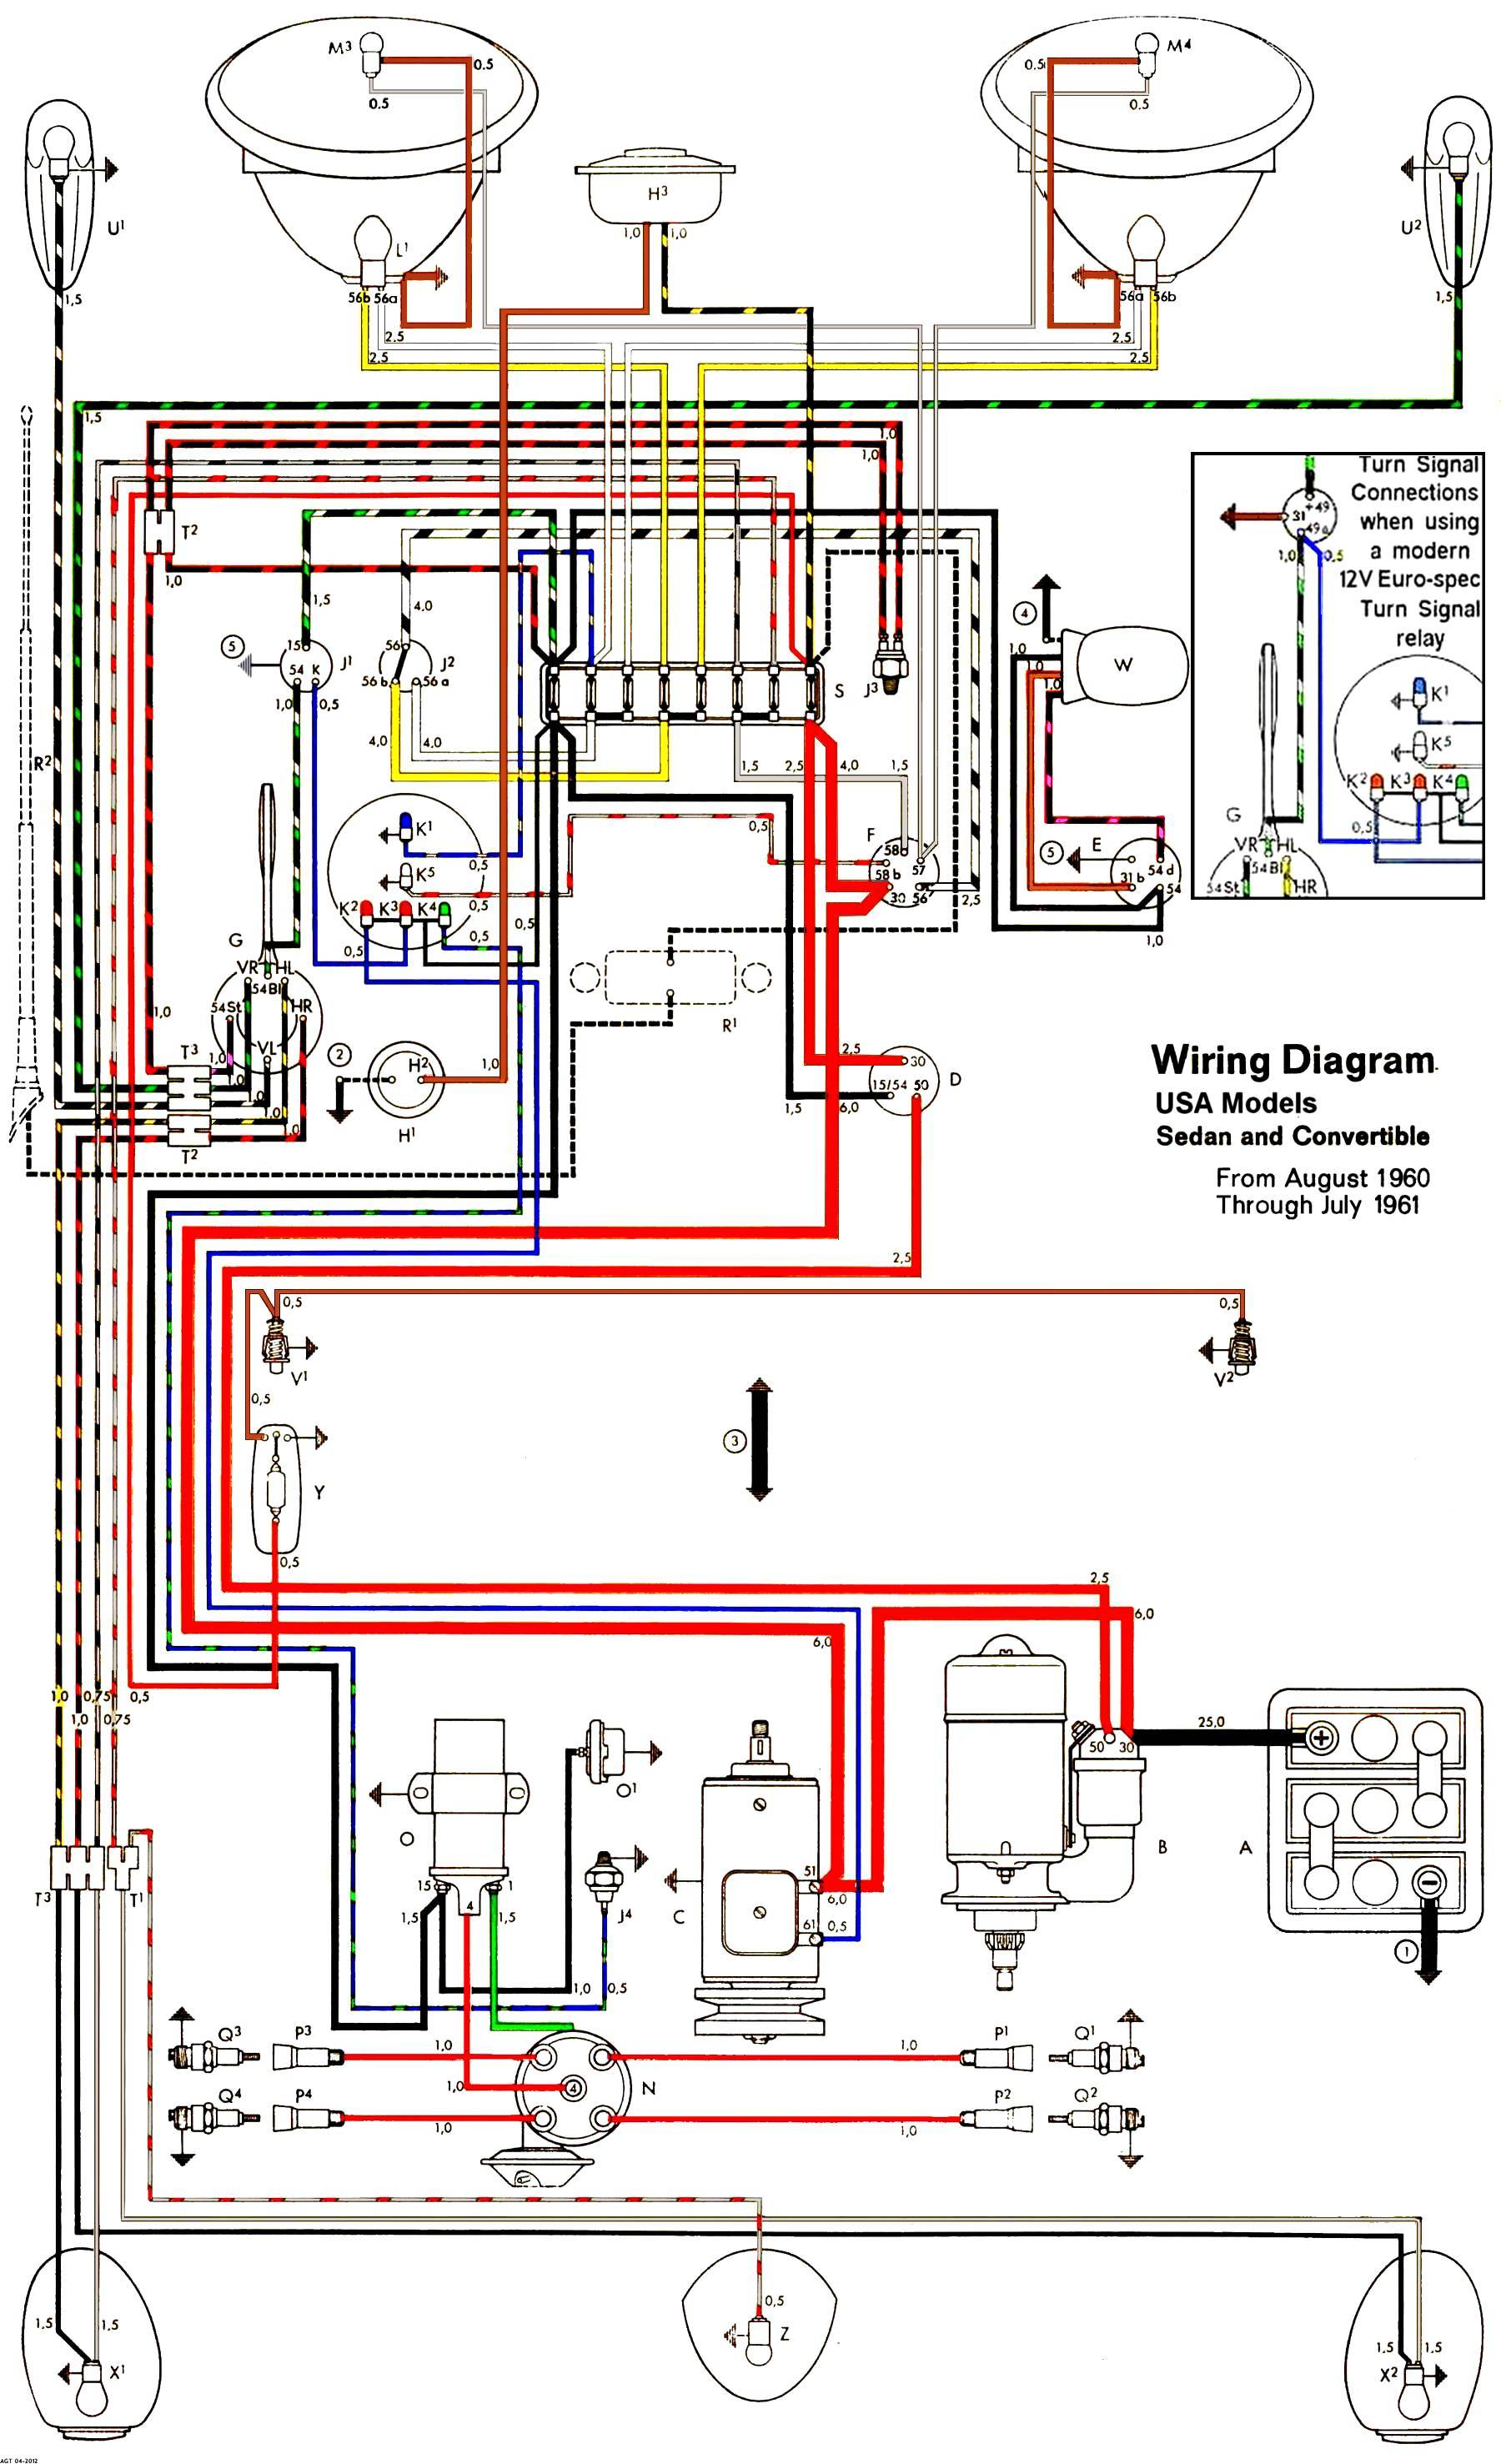 Type 1 Wiring Diagrams Light Switch Diagram Together With Motorcycle Tail